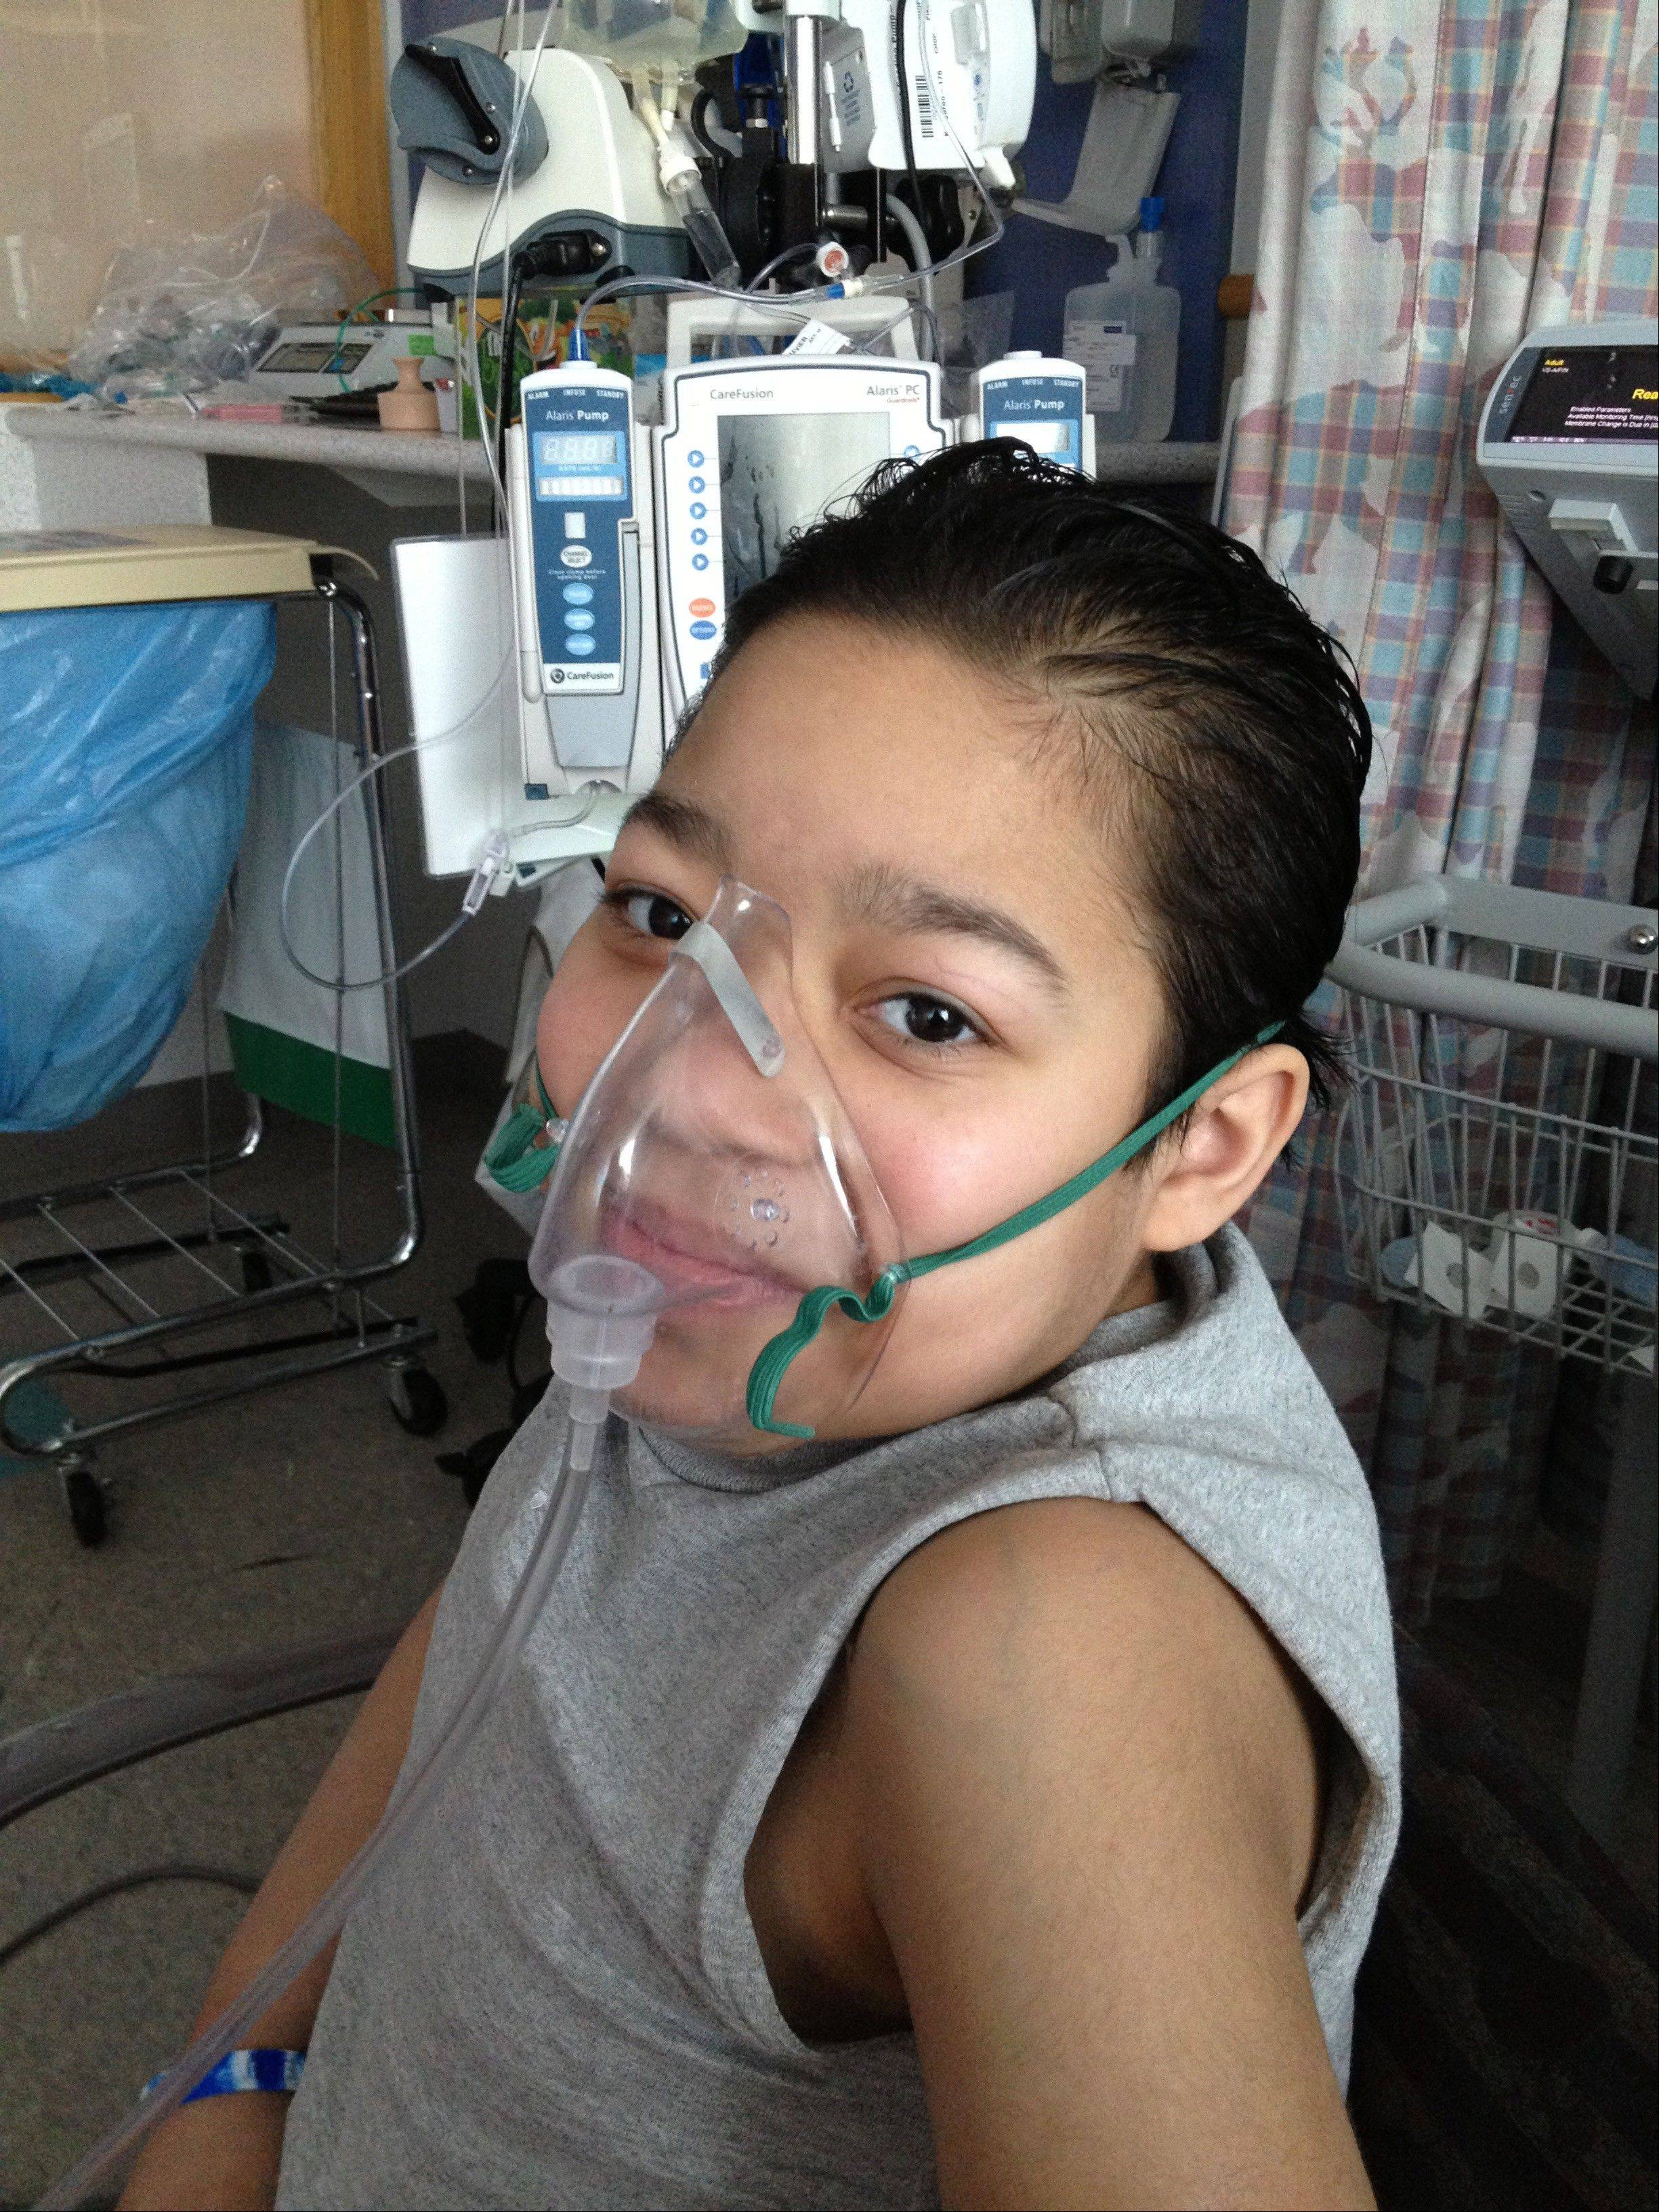 Javier Acosta, 11, of New York, who has cystic fibrosis and is in intensive care at Children's Hospital of Philadelphia, the same hospital where 10-year-old Sarah Murnaghan is a patient.